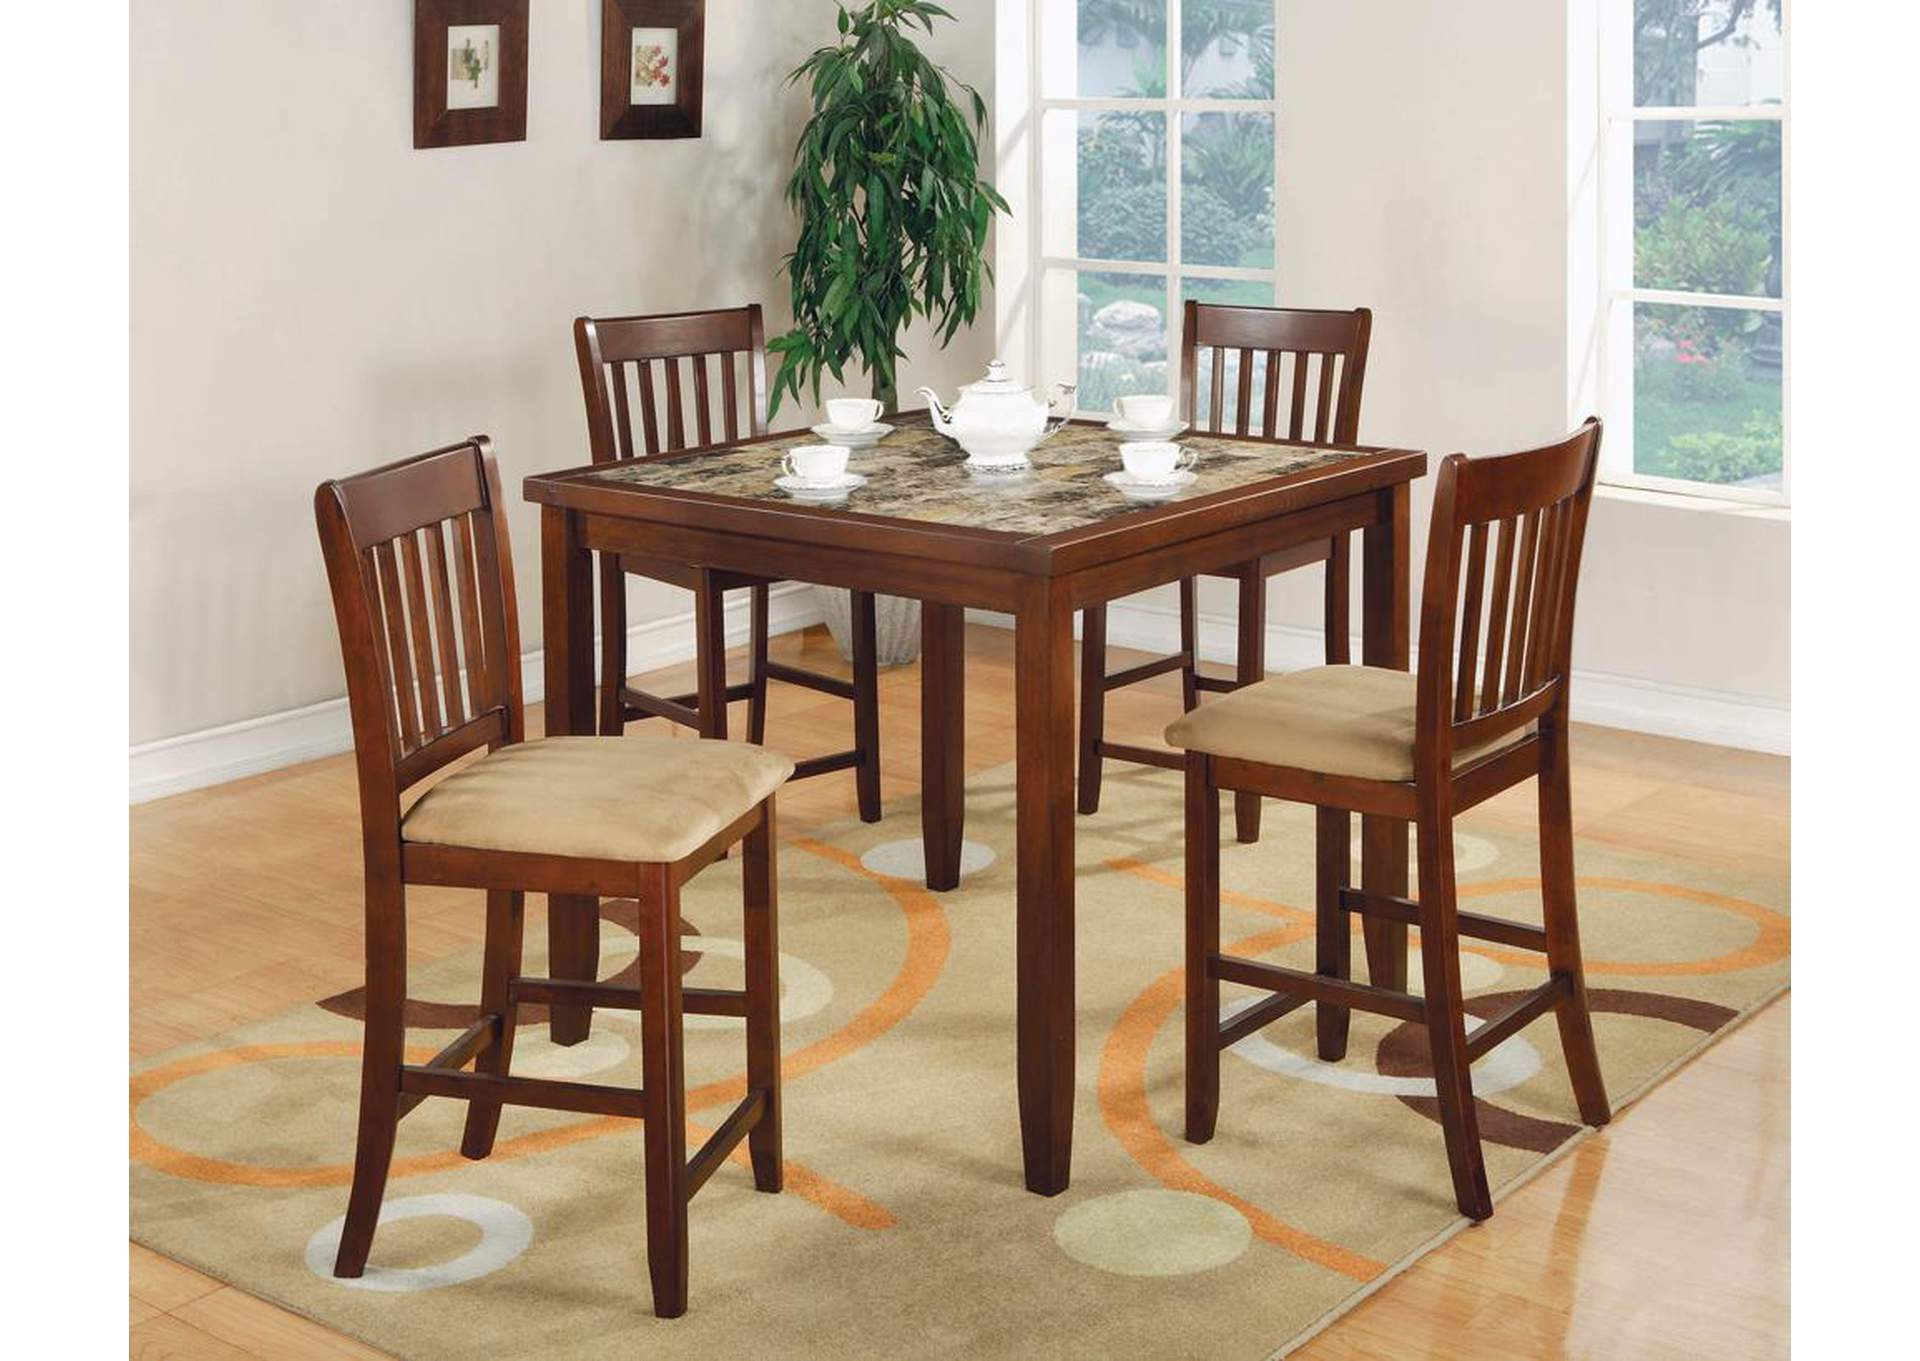 Westar Five-Piece Casual Cherry Counter-Height Dining Set,Coaster Furniture